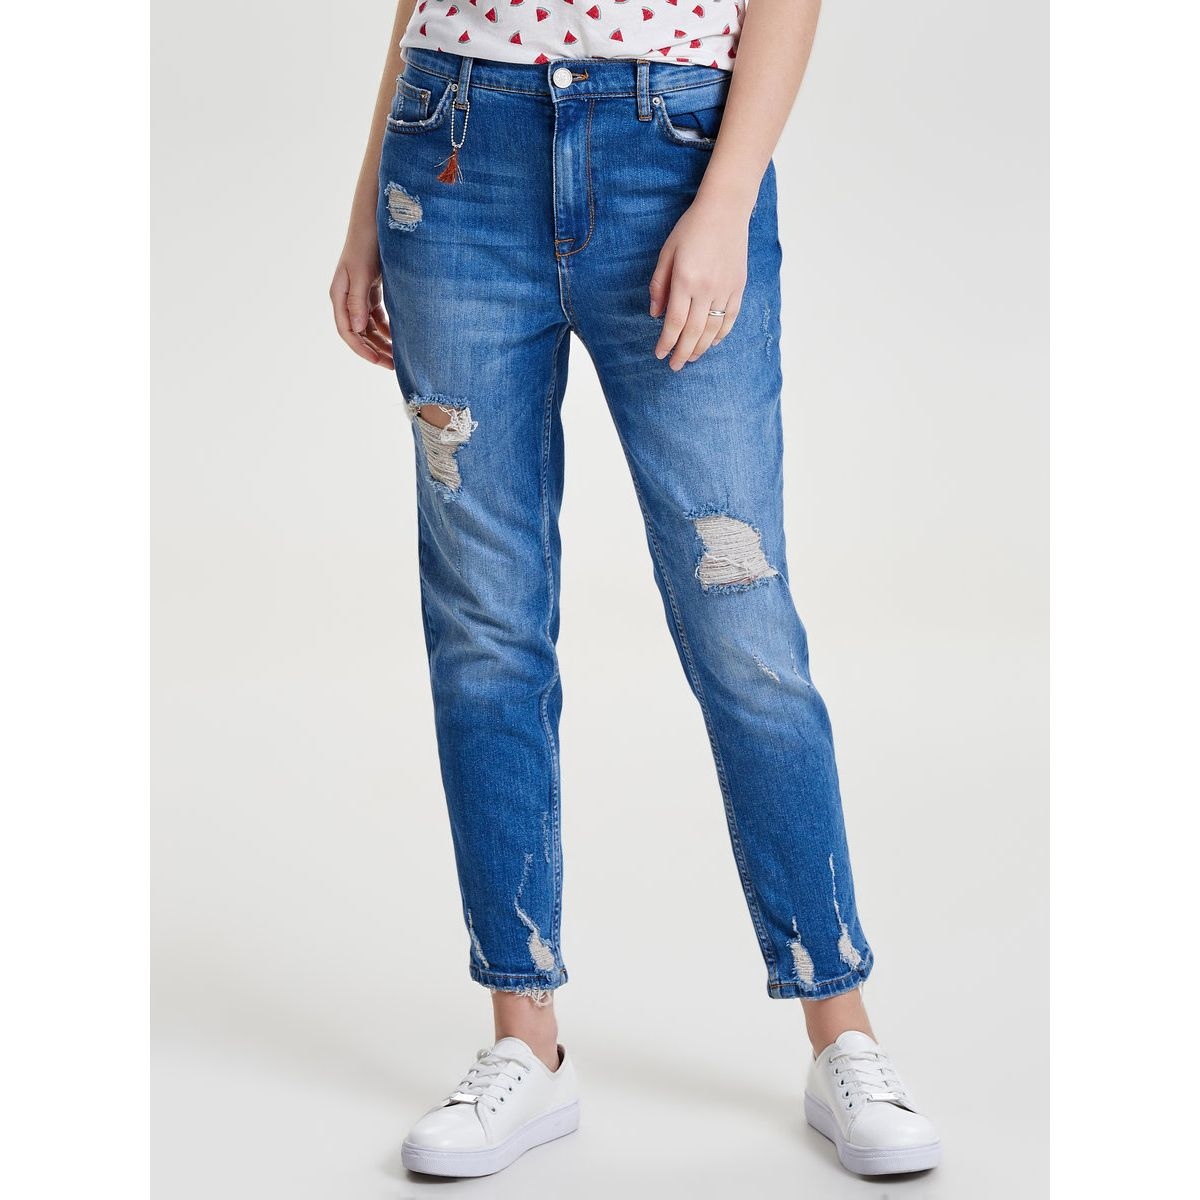 Only Studio mw ankle Boyfriendjeans